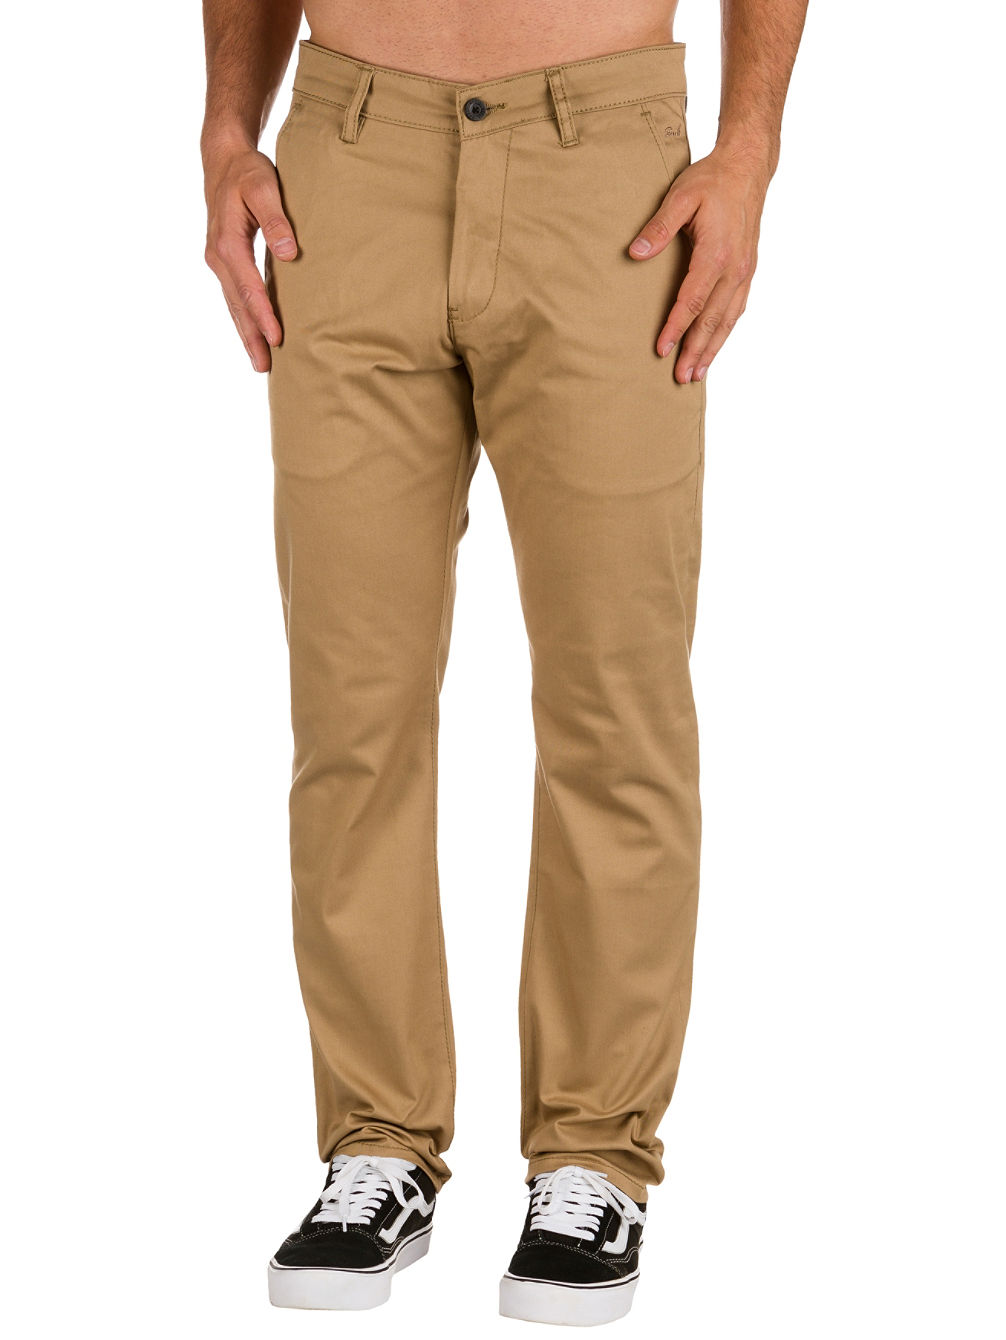 Straight Flex Chino Pants